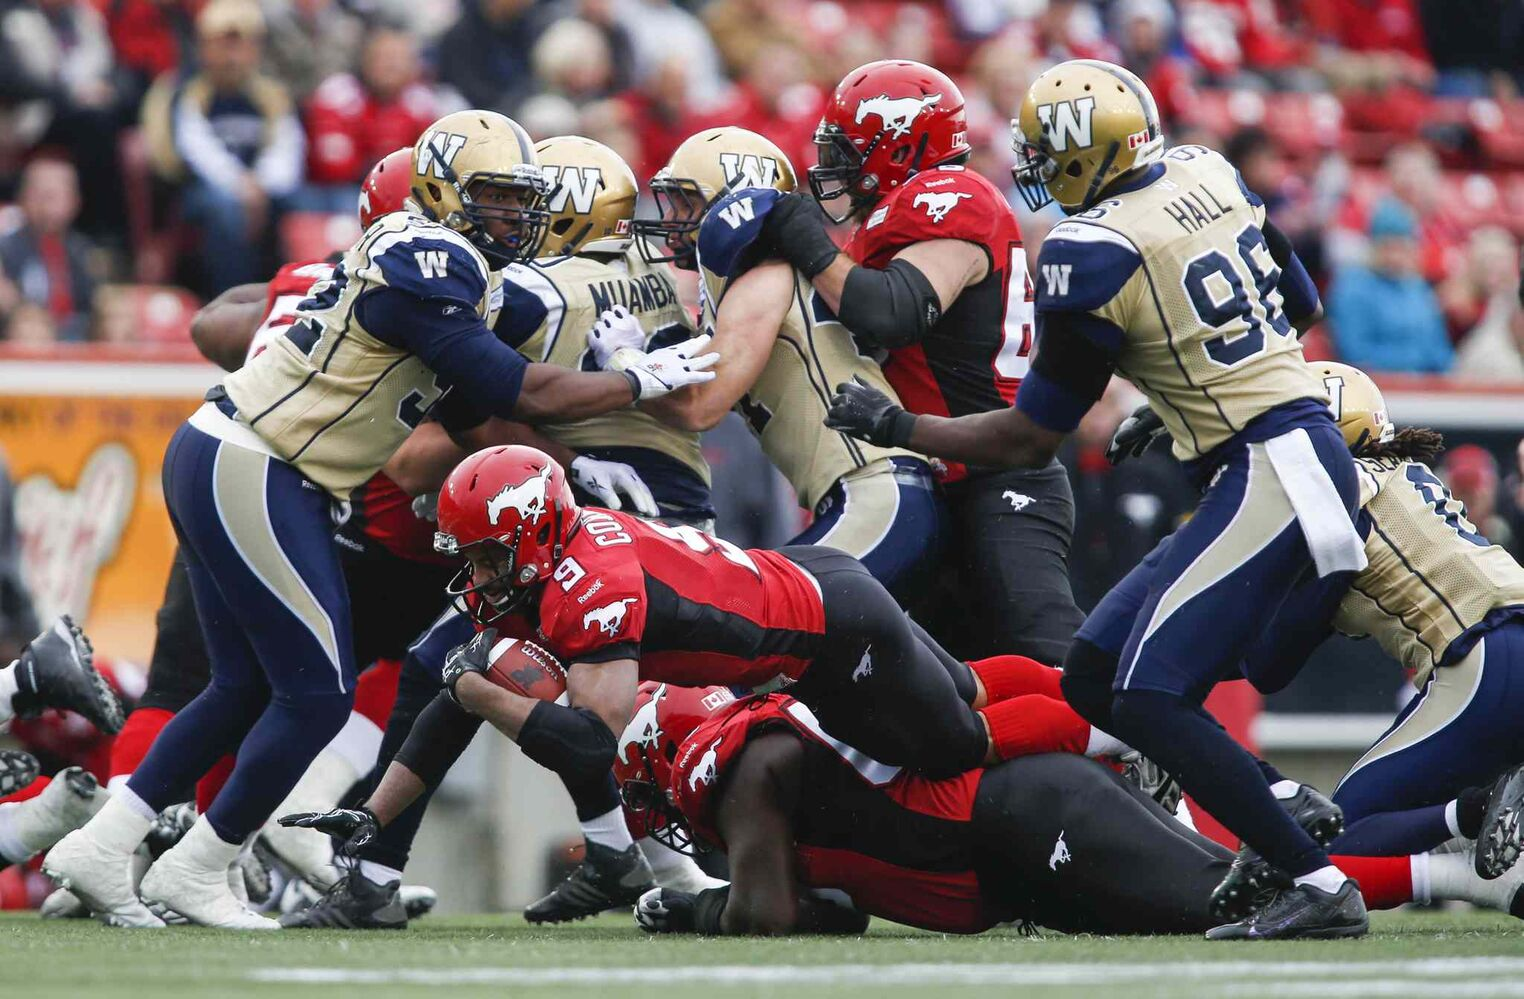 Winnipeg Blue Bombers' Bryant Turner Jr. (left) and Alex Hall (right) look on as Calgary Stampeders' Jon Cornish (centre) dives for more yards during the first half. (Jeff McIntosh / The Canadian Press)